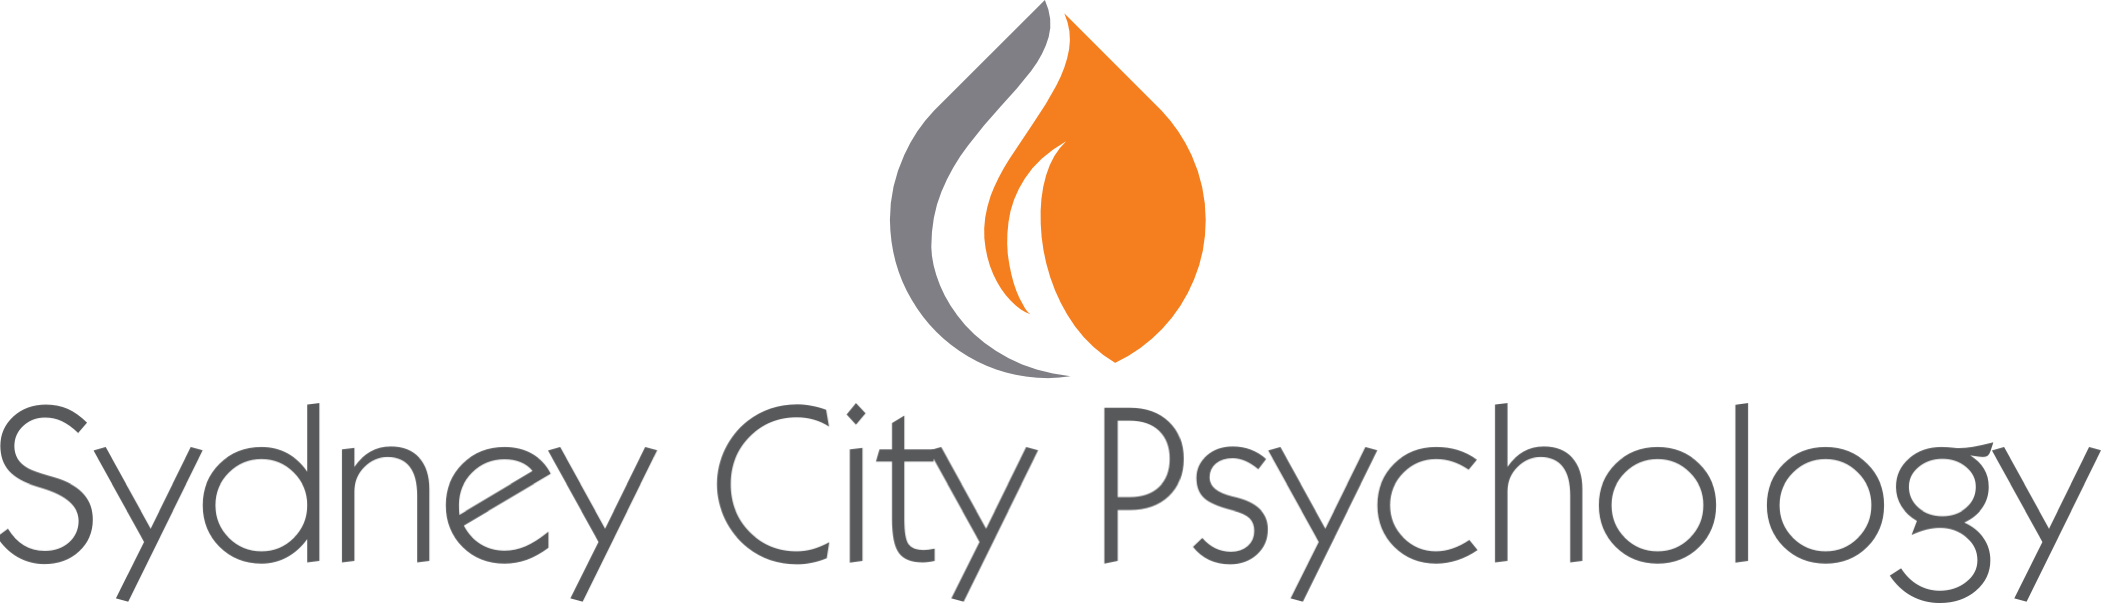 Sydney City Psychology